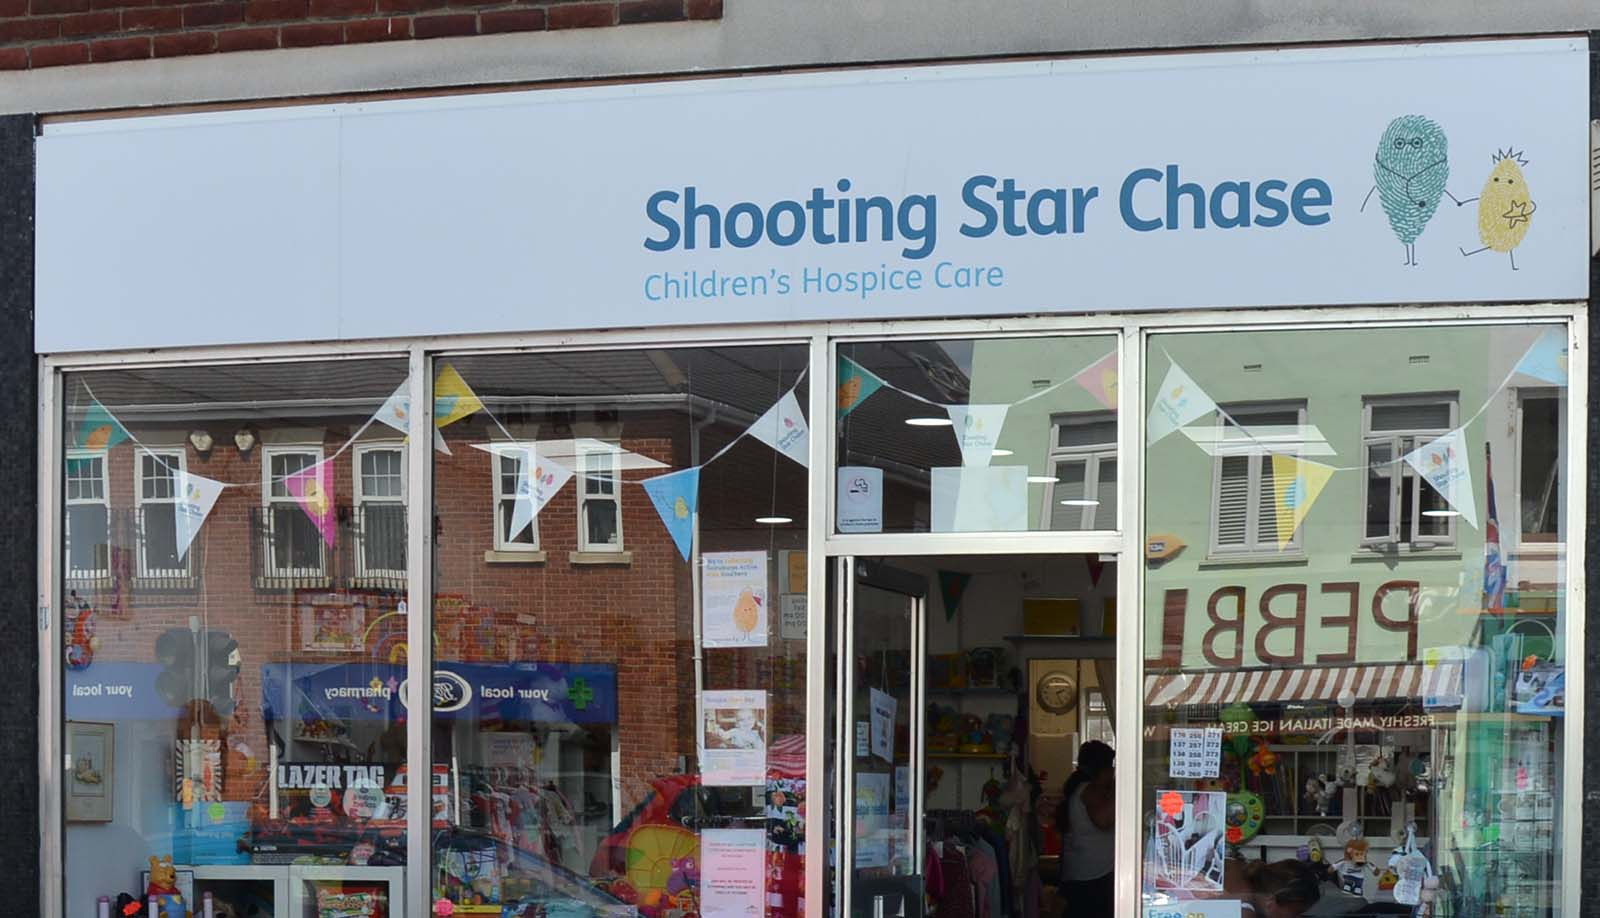 charity shop in ashford middlesex shooting star chase. Black Bedroom Furniture Sets. Home Design Ideas